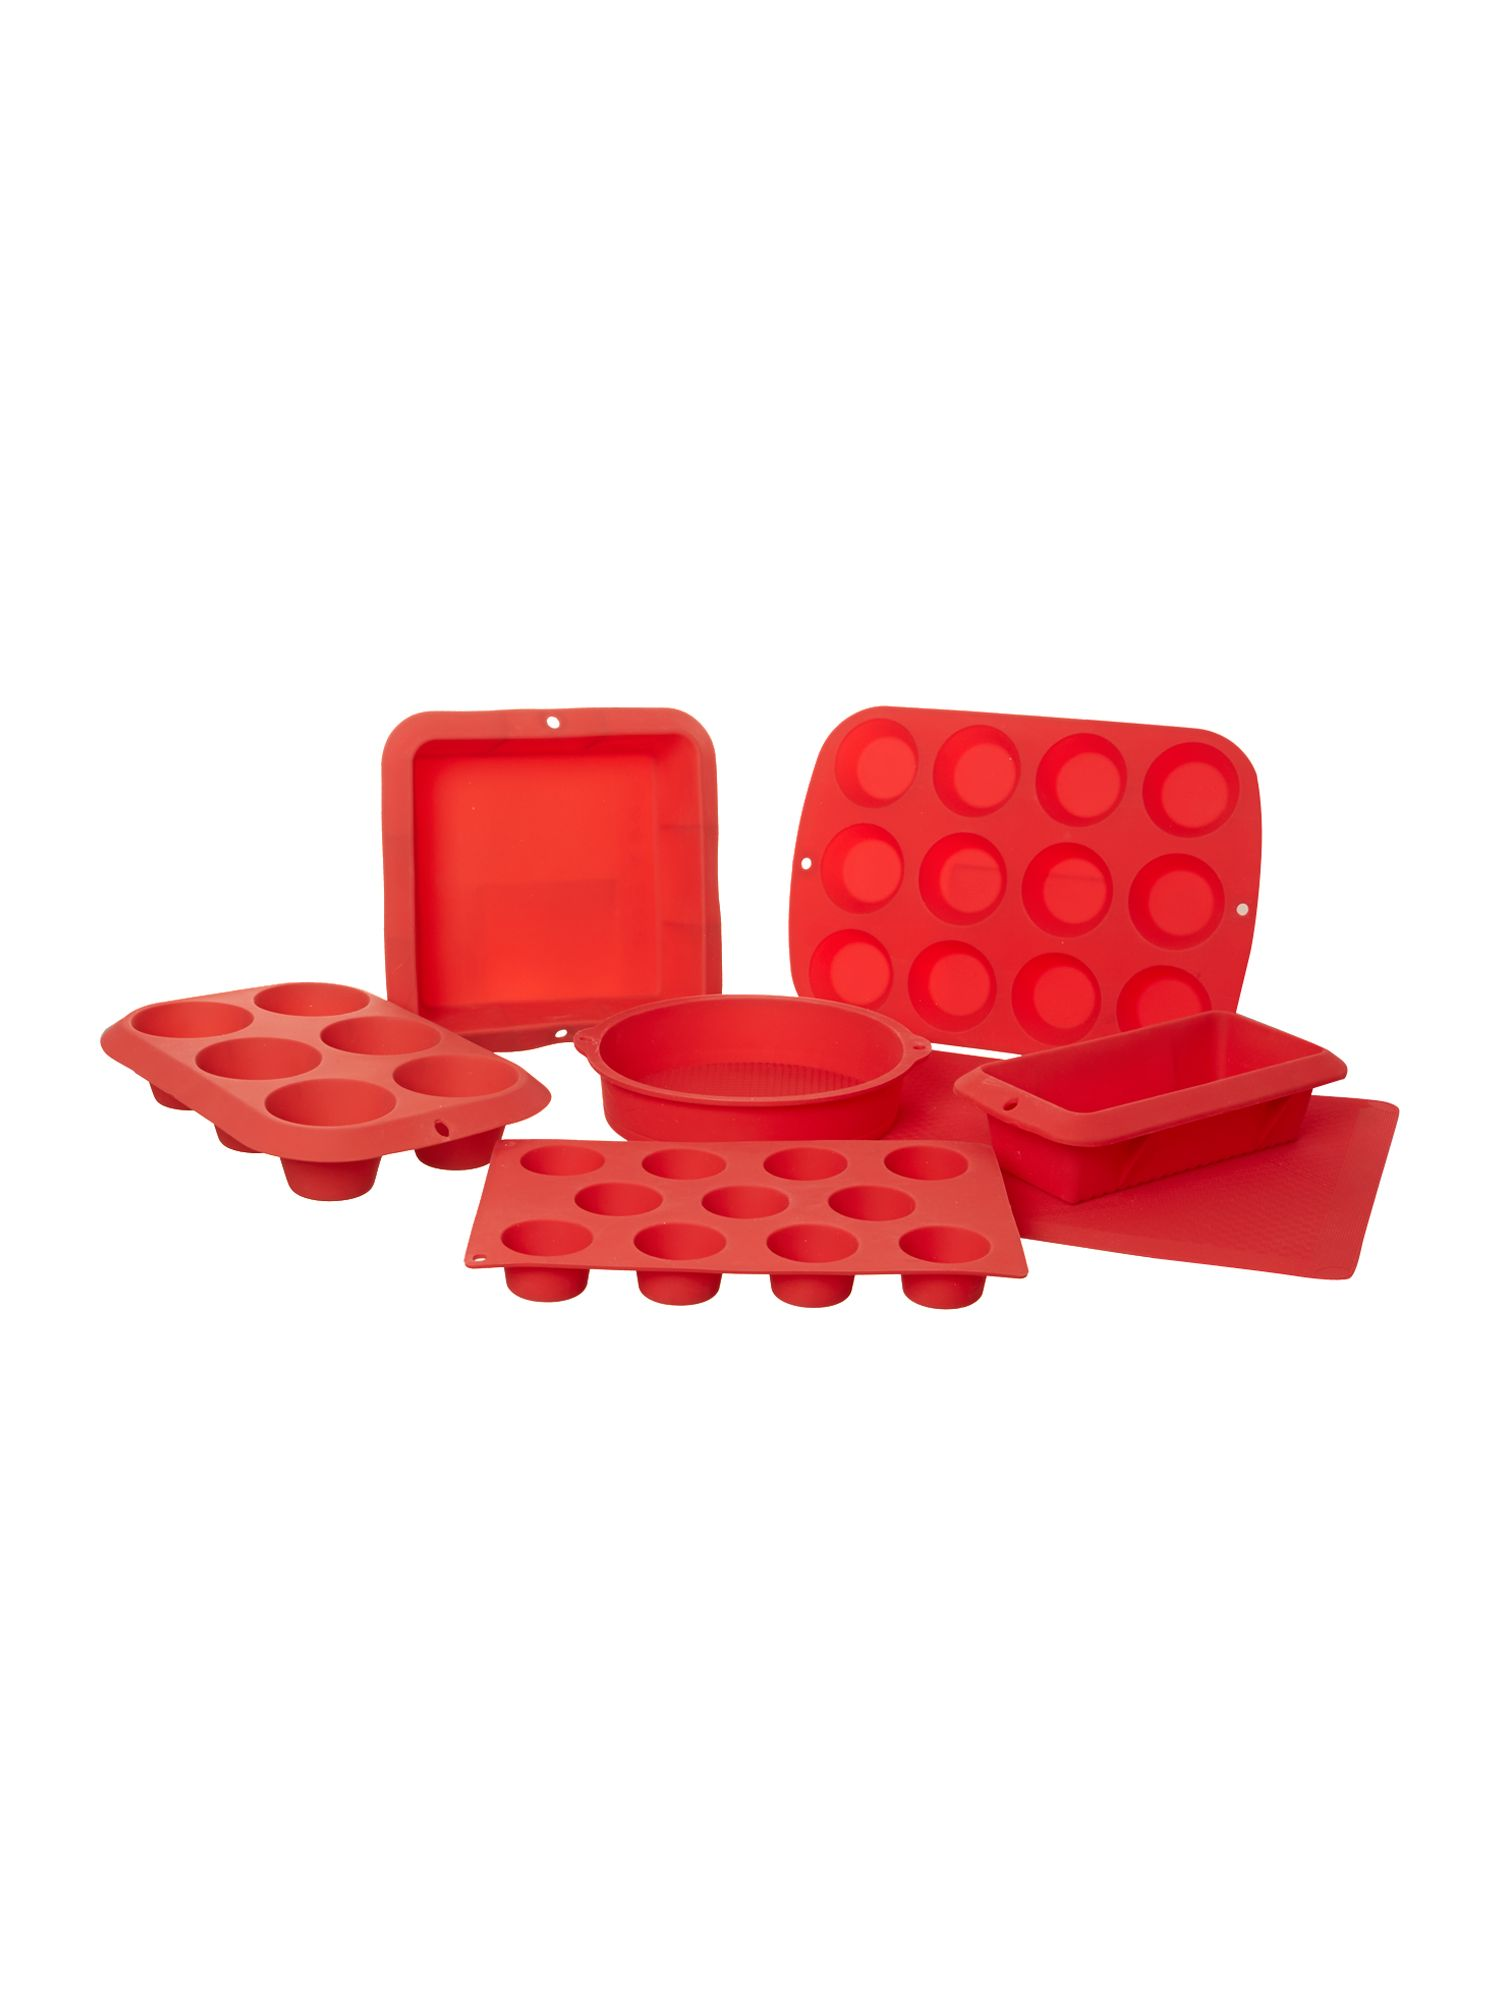 Bakeware Range in red